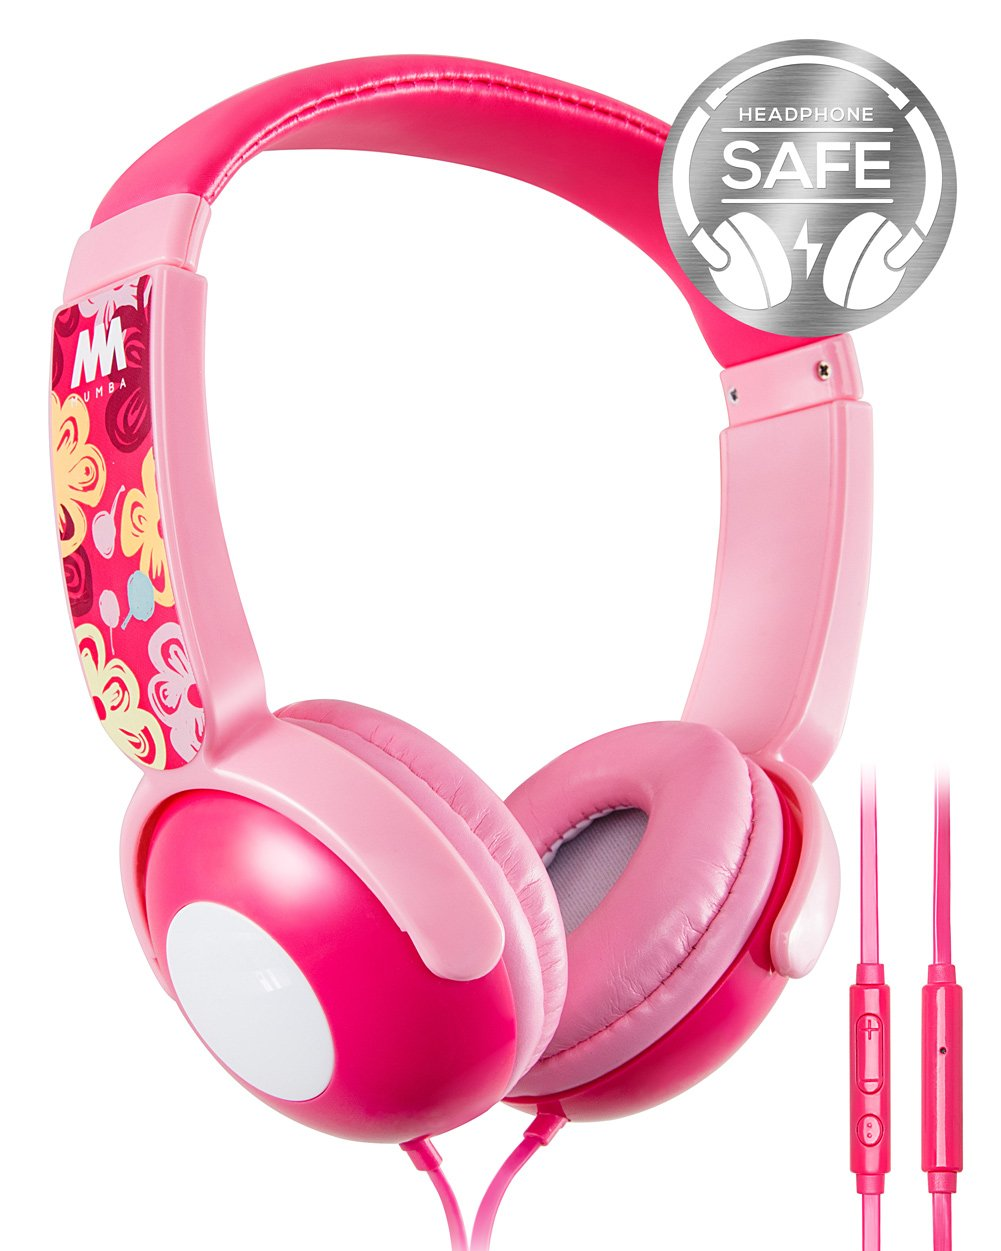 Kids Headphones, Mumba Volume Limited Over Ear Headphones, 85 Safe Listening Adjustable Headsets with Microphone for Kids Children (Pink) by Mumba